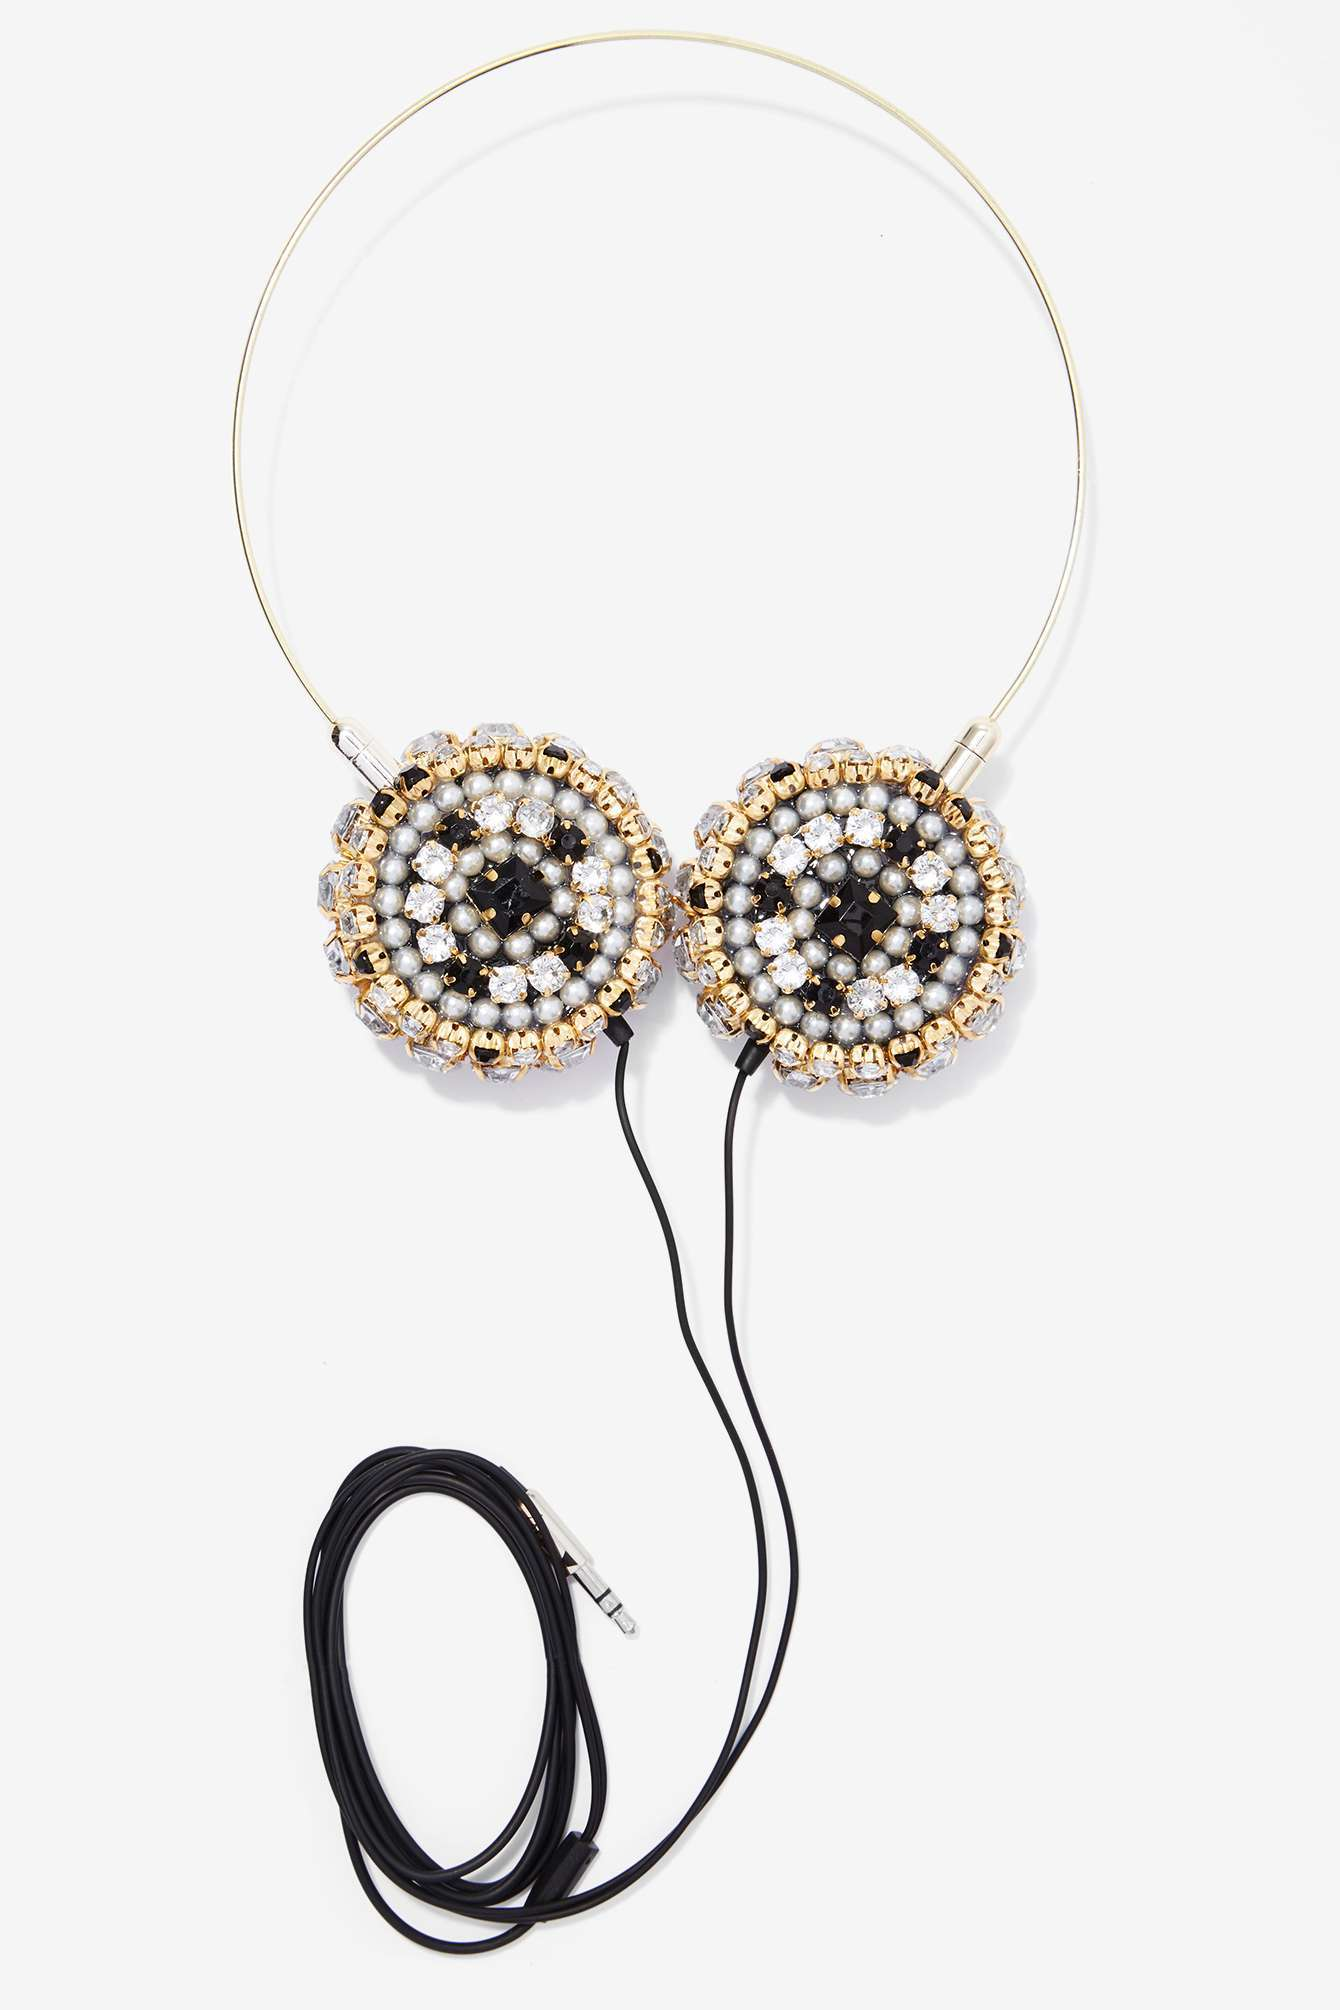 Nasty-Gal-Skinnydip London-Zara -Martin- Bling-Headphones-3